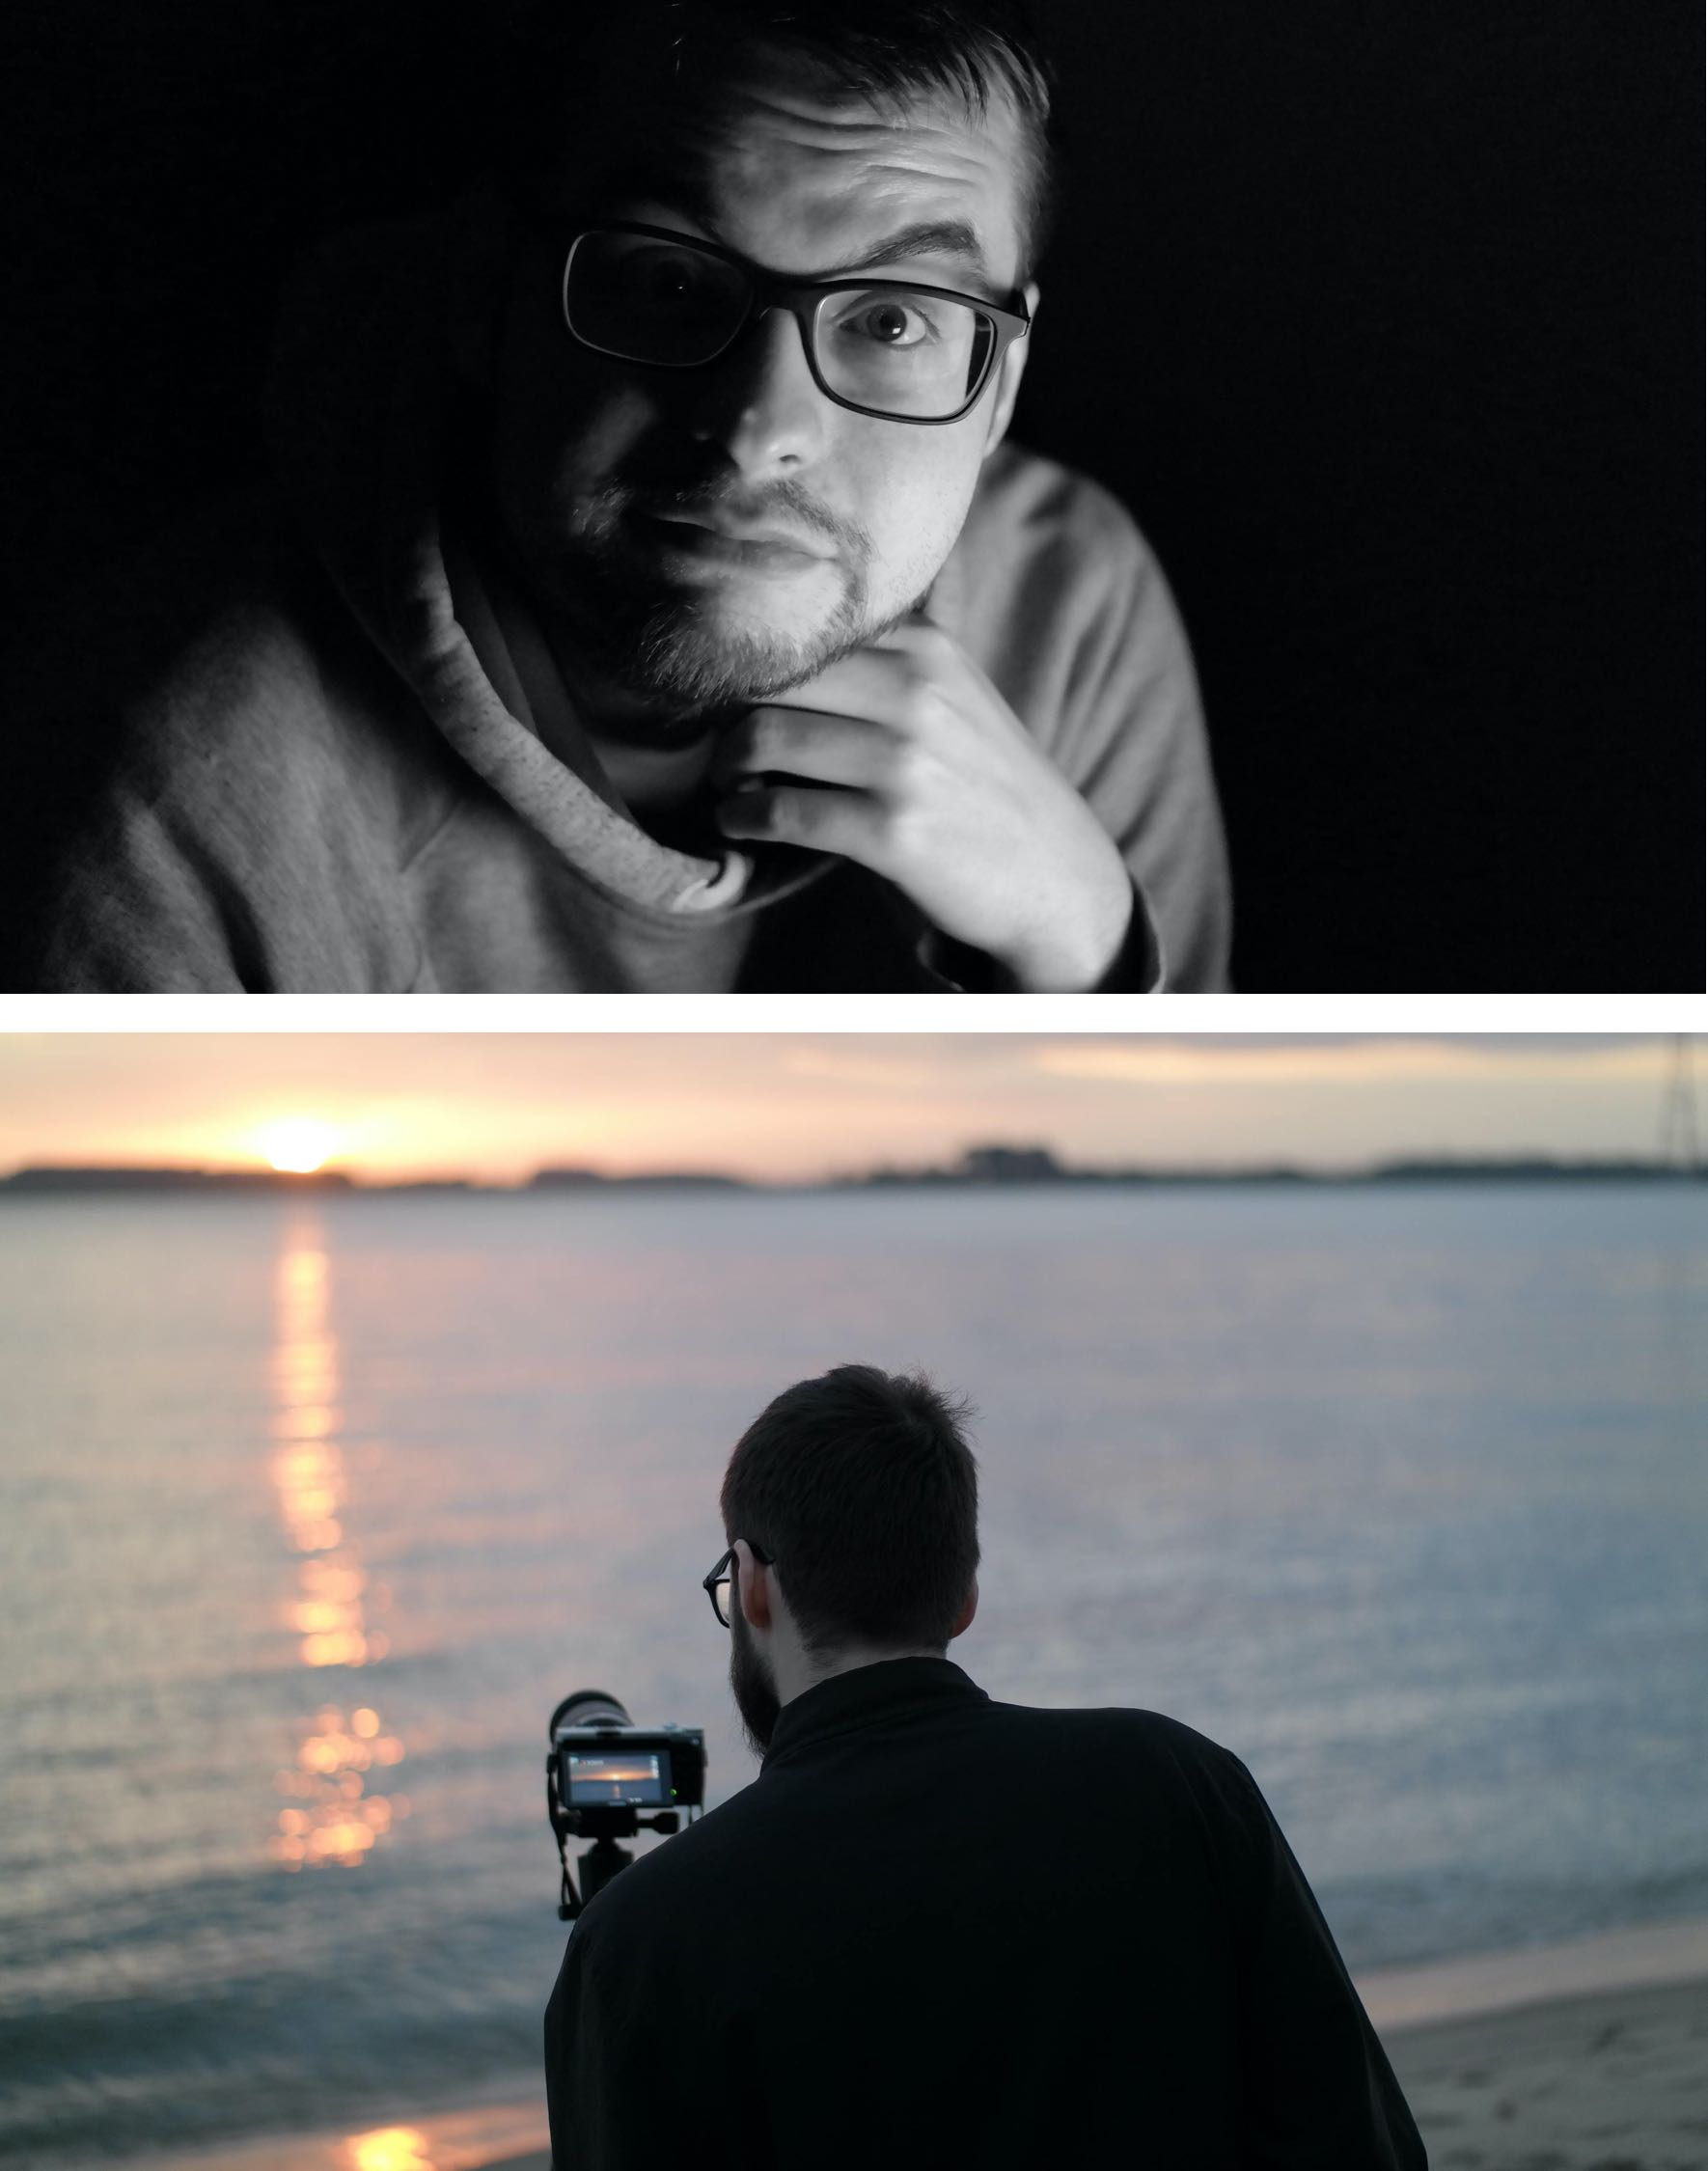 At the first image, Niklas is posing to the camera. The second image Niklas is holding a camera and taking a picture of the beautiful sunset.